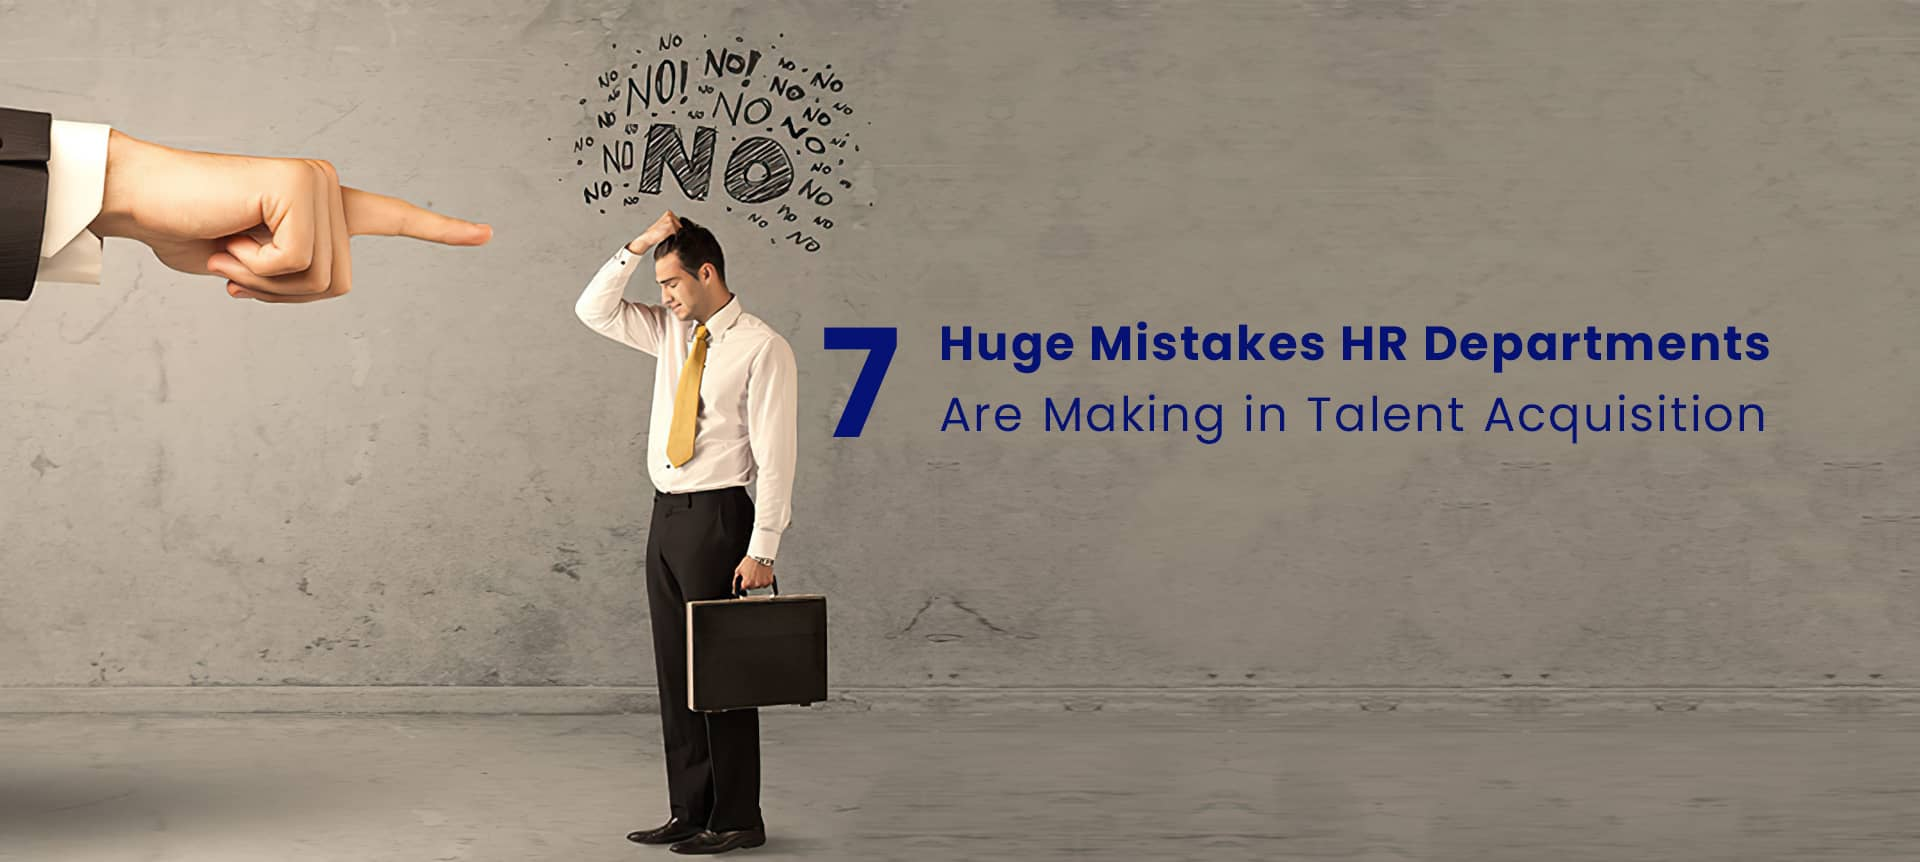 A male recruiter making a mistake in talent acquisition